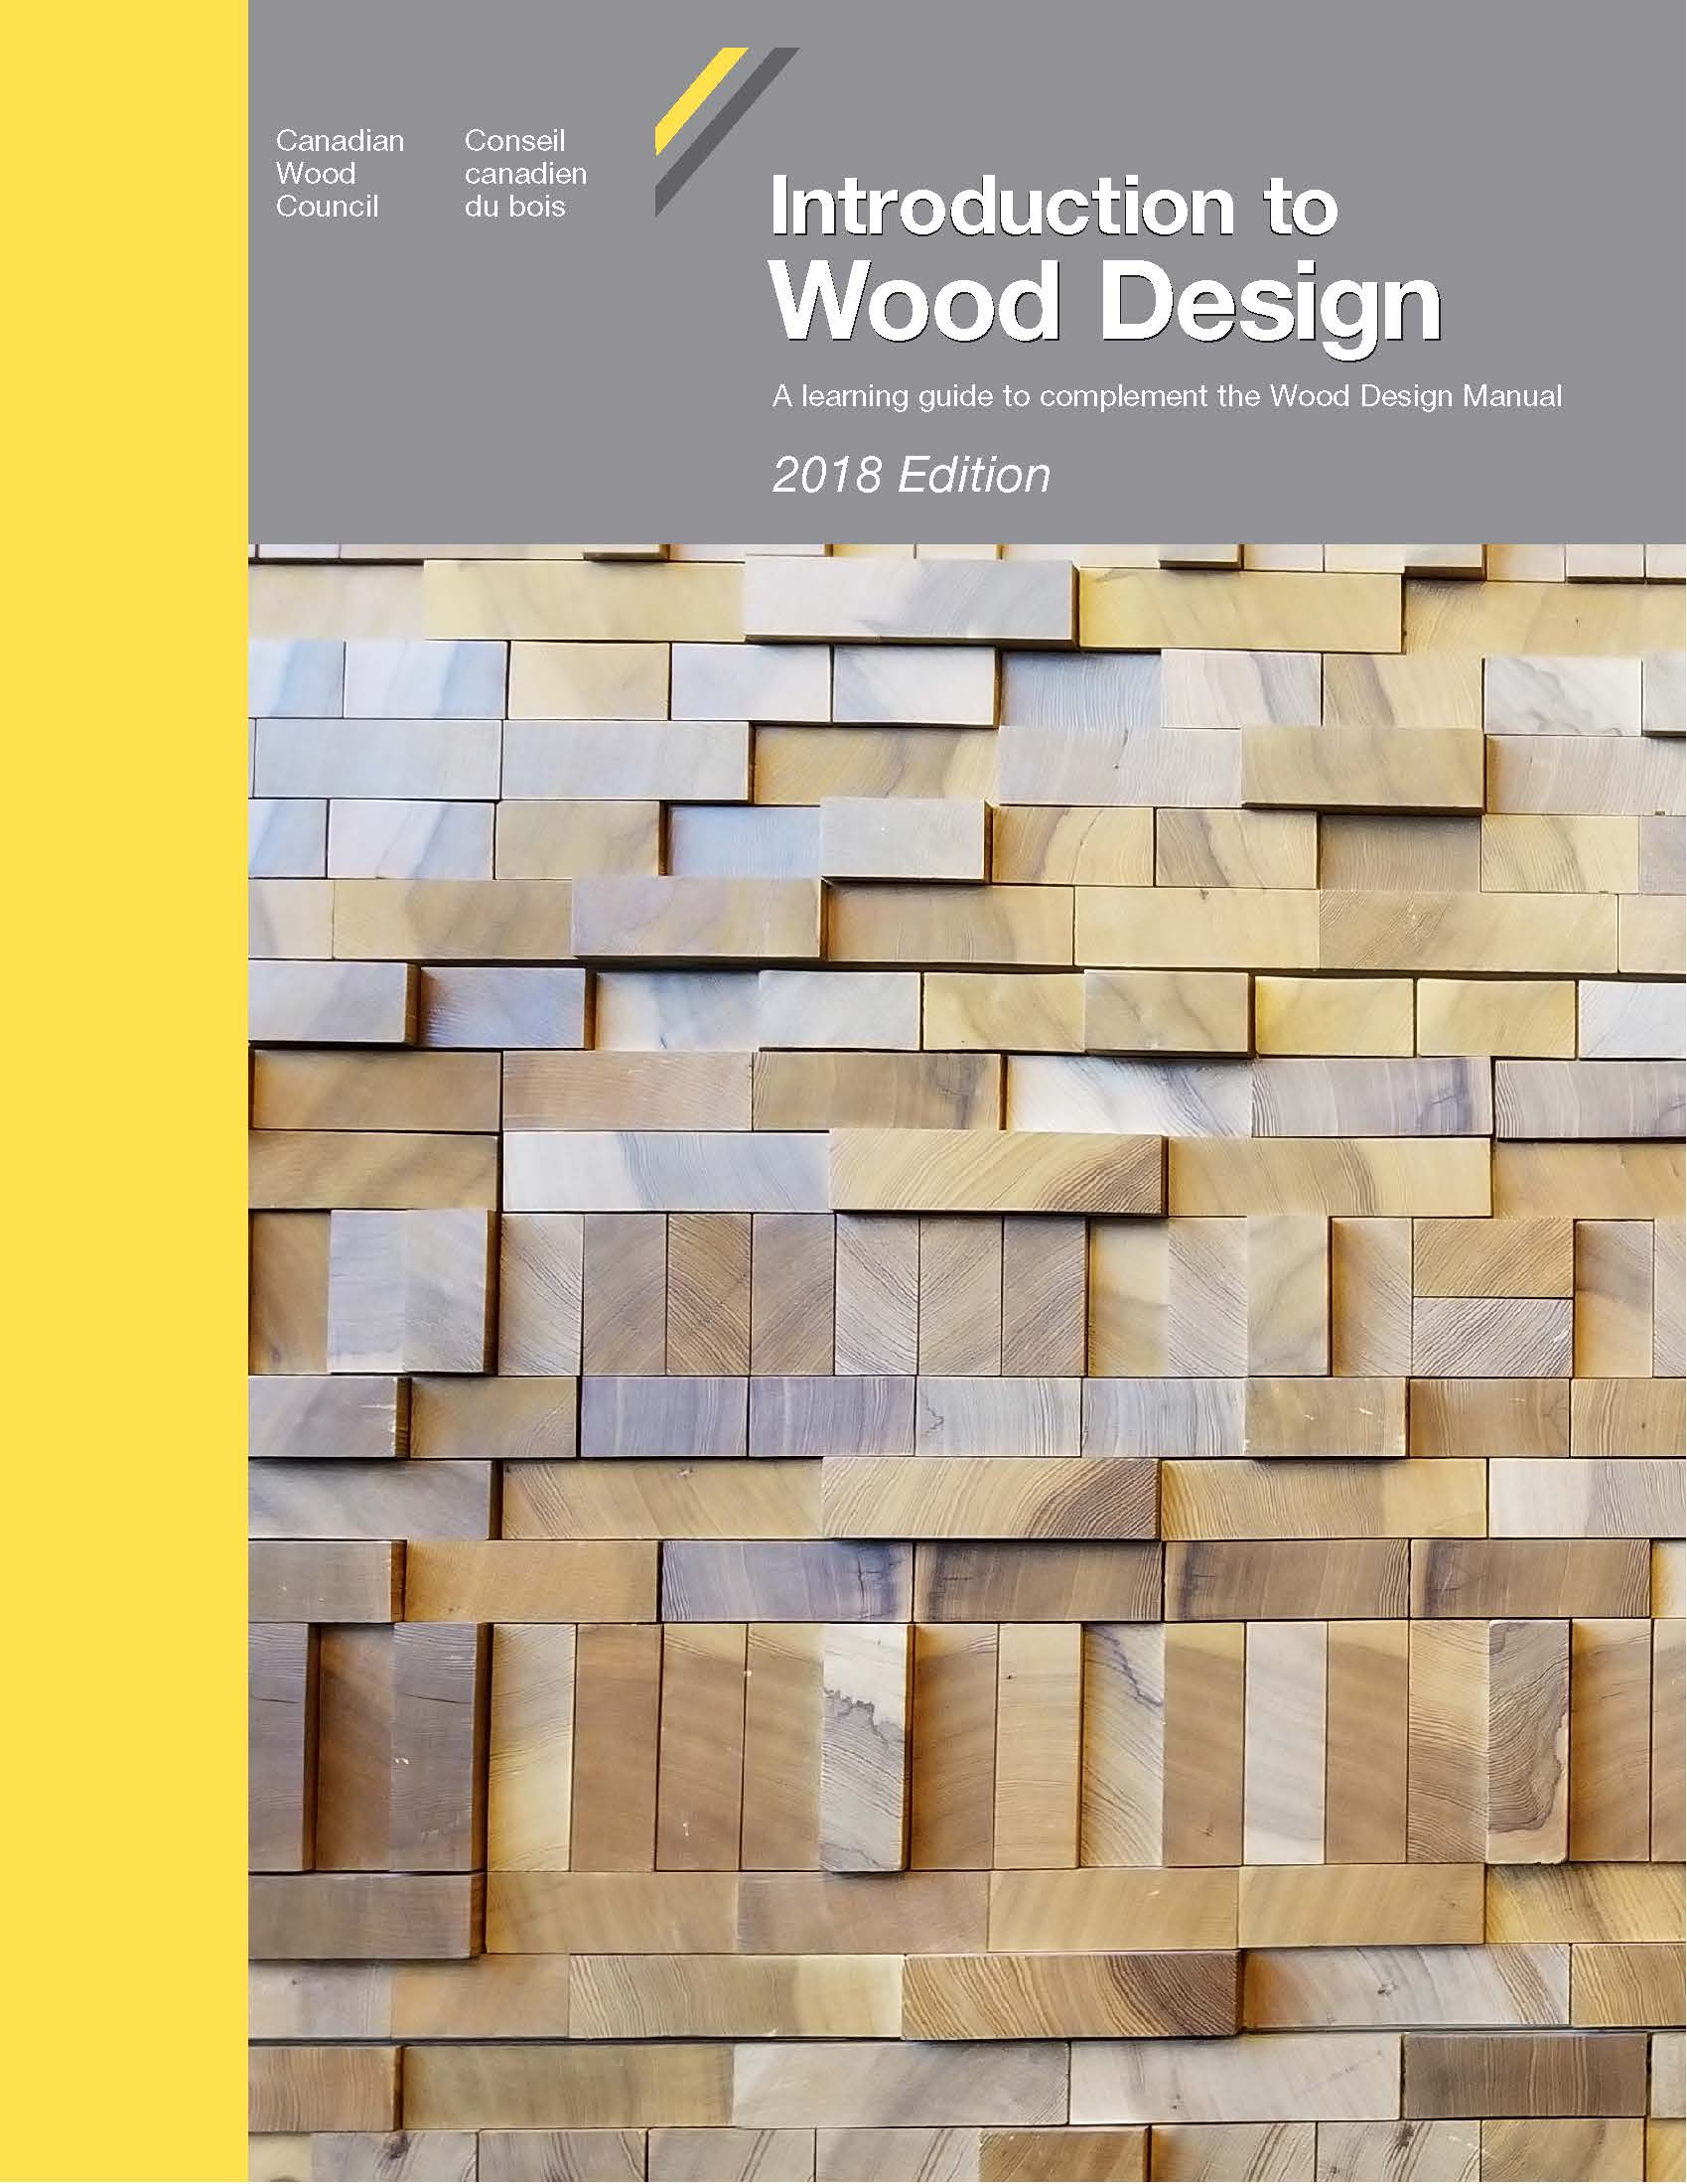 Introduction To Wood Design 2018 The Canadian Wood Council Cwc The Canadian Wood Council Cwc